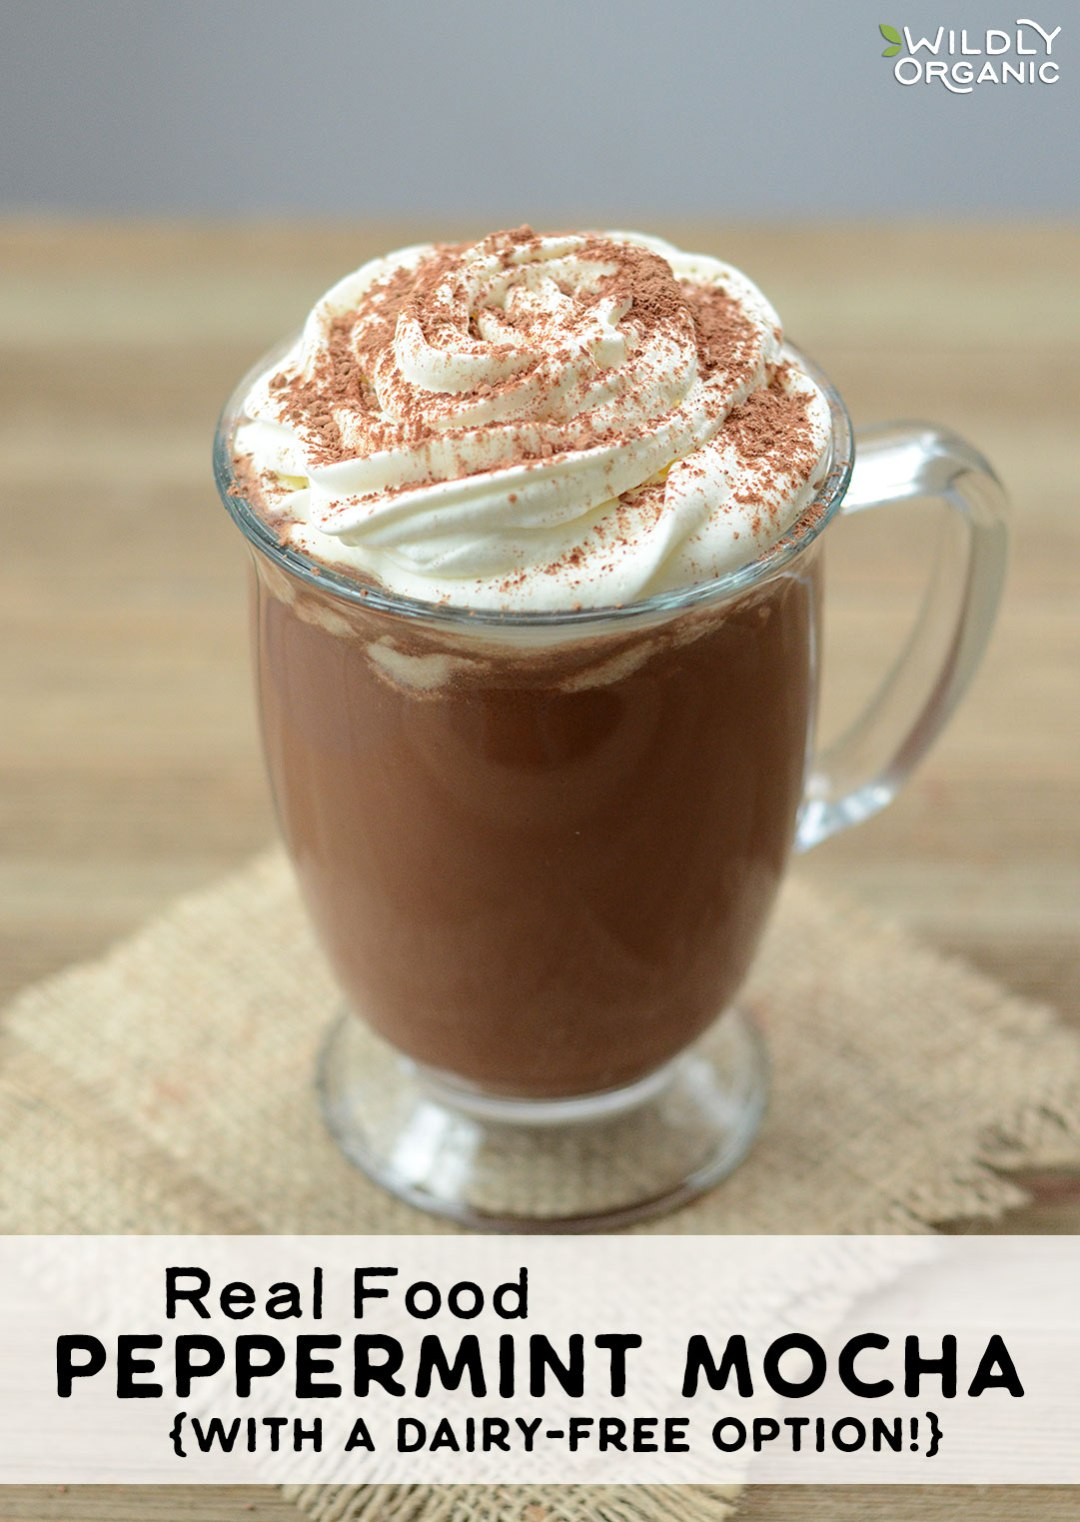 Can a Real Food Peppermint Mocha reallytasteas good as (or better than) the well-loved version from one of American's favorite coffee joints? You betcha! This recipe is loaded with antioxidants, healthy fats, and amazing flavors without the artificial additives and refined sugar, plus it has a dairy-free option!